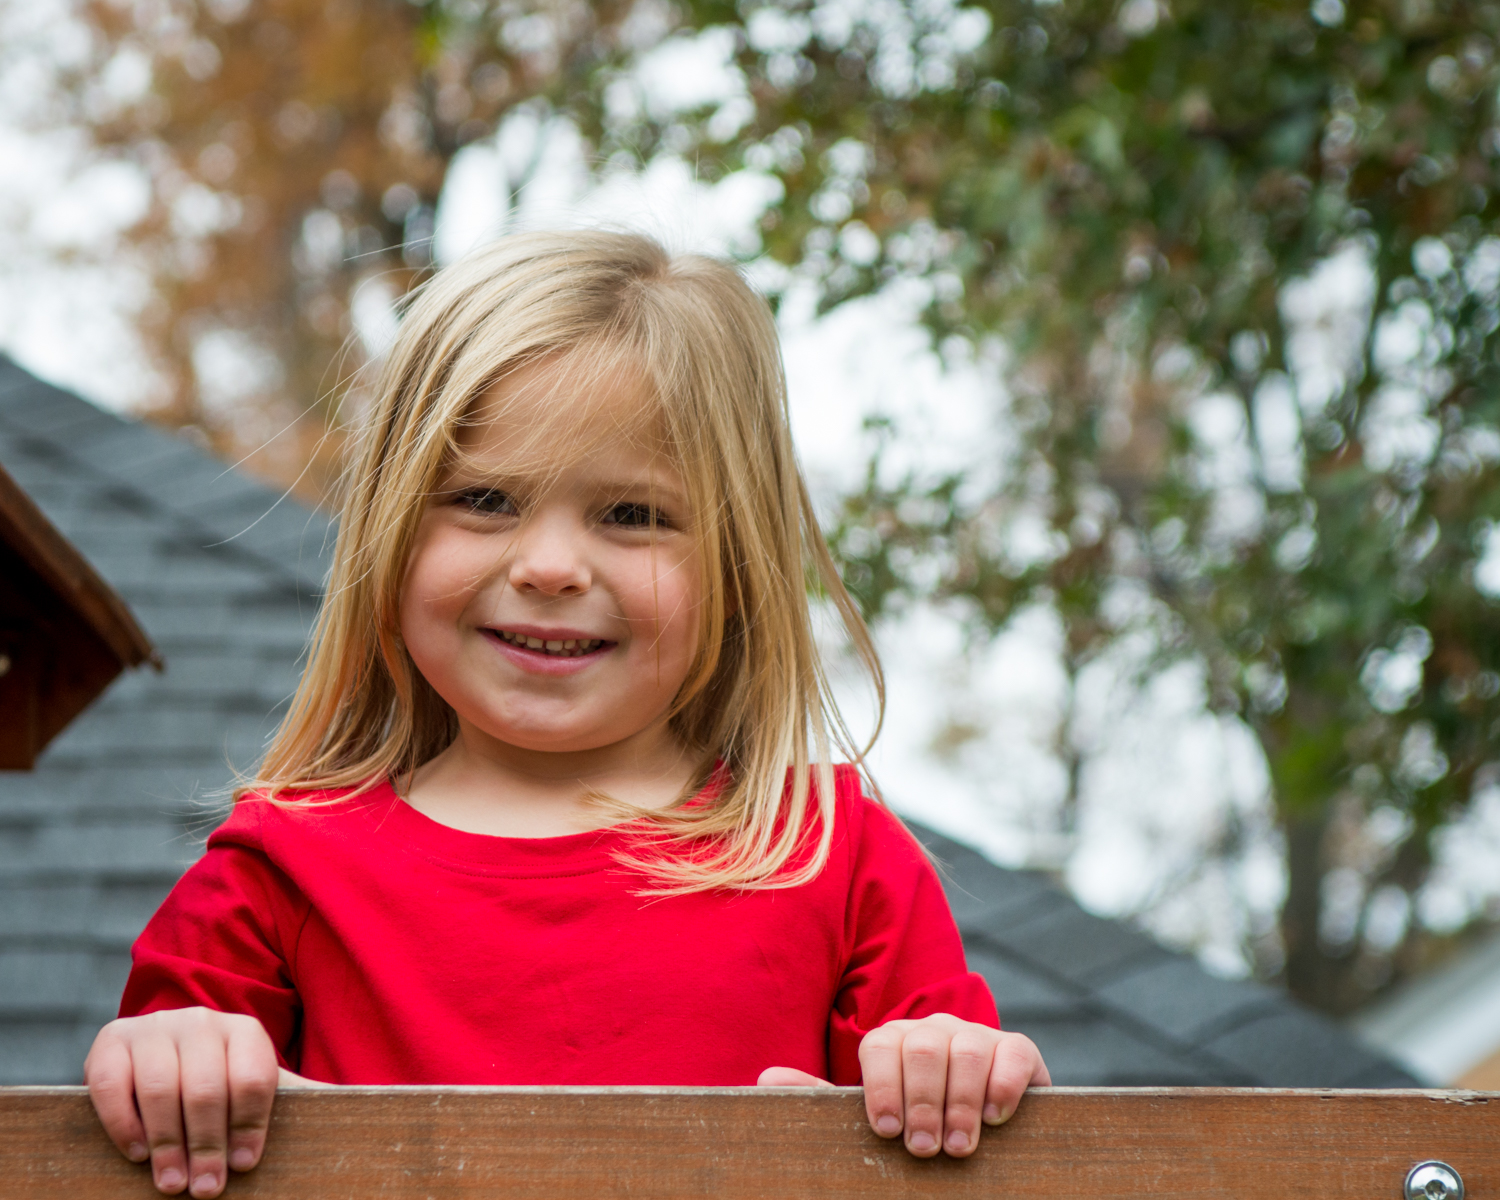 20141108-Marchal Family-PMG_4192.jpg